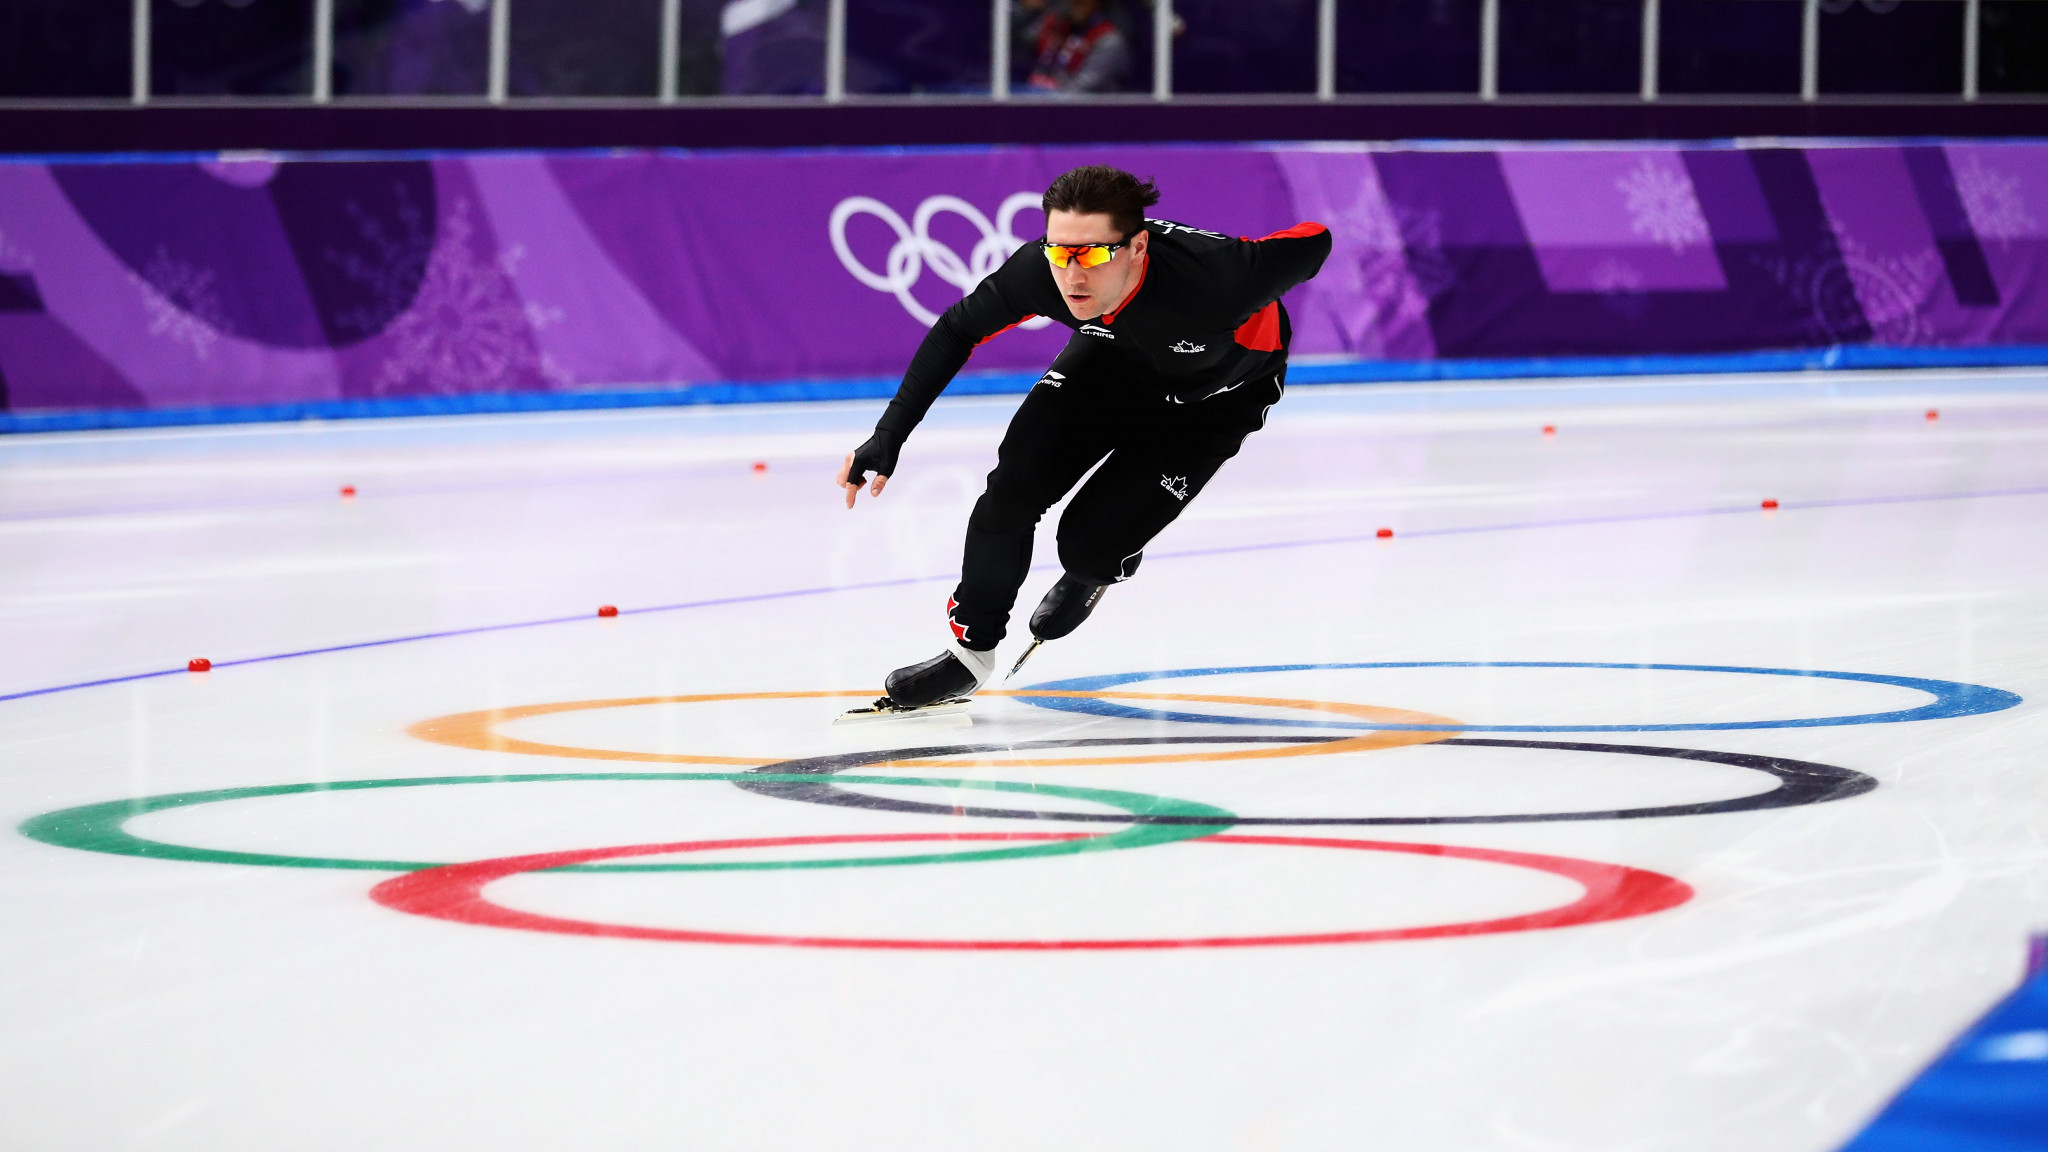 Vincent de Haître is set to compete at Tokyo 2020 after two Olympic appearances for Canada as a speed skater ©Getty Images